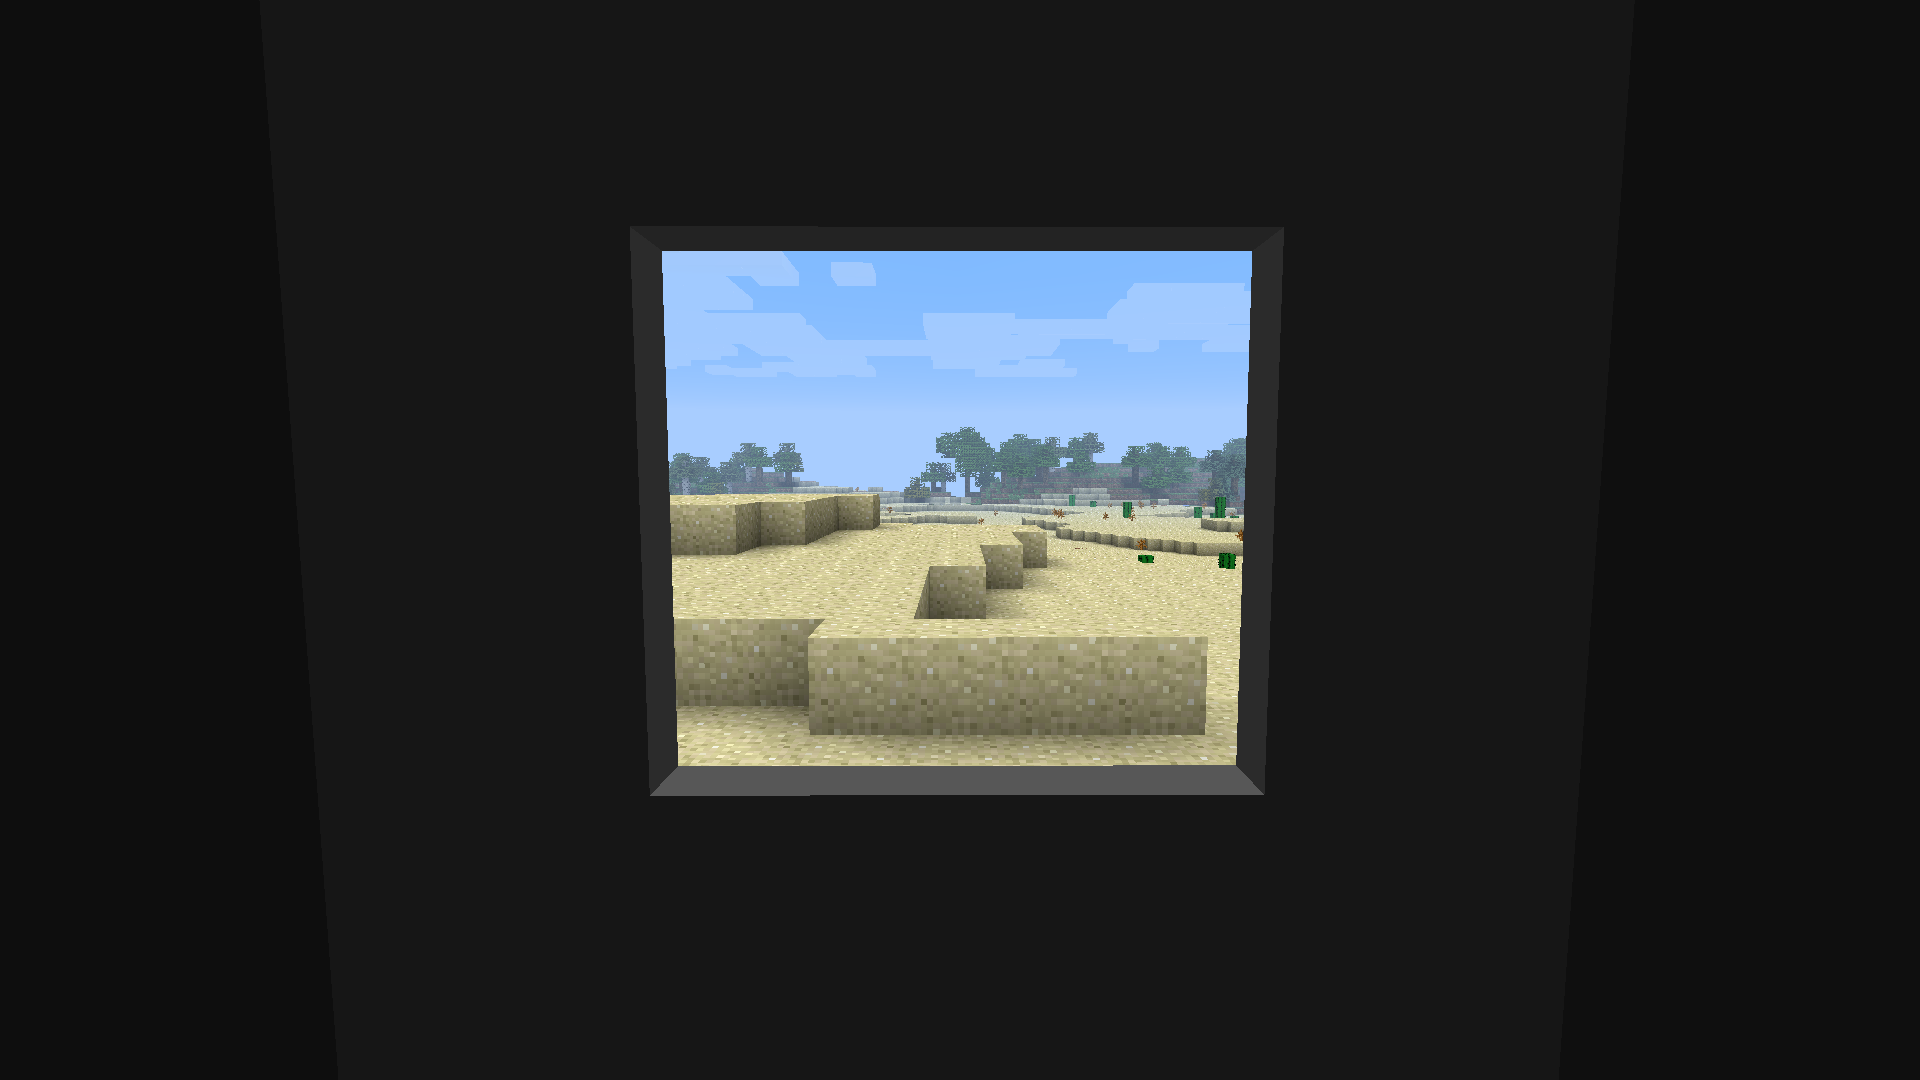 Galacticraft Planets galacticraft mod [1.11.2/1.10.2/1.7.10] - travel to new